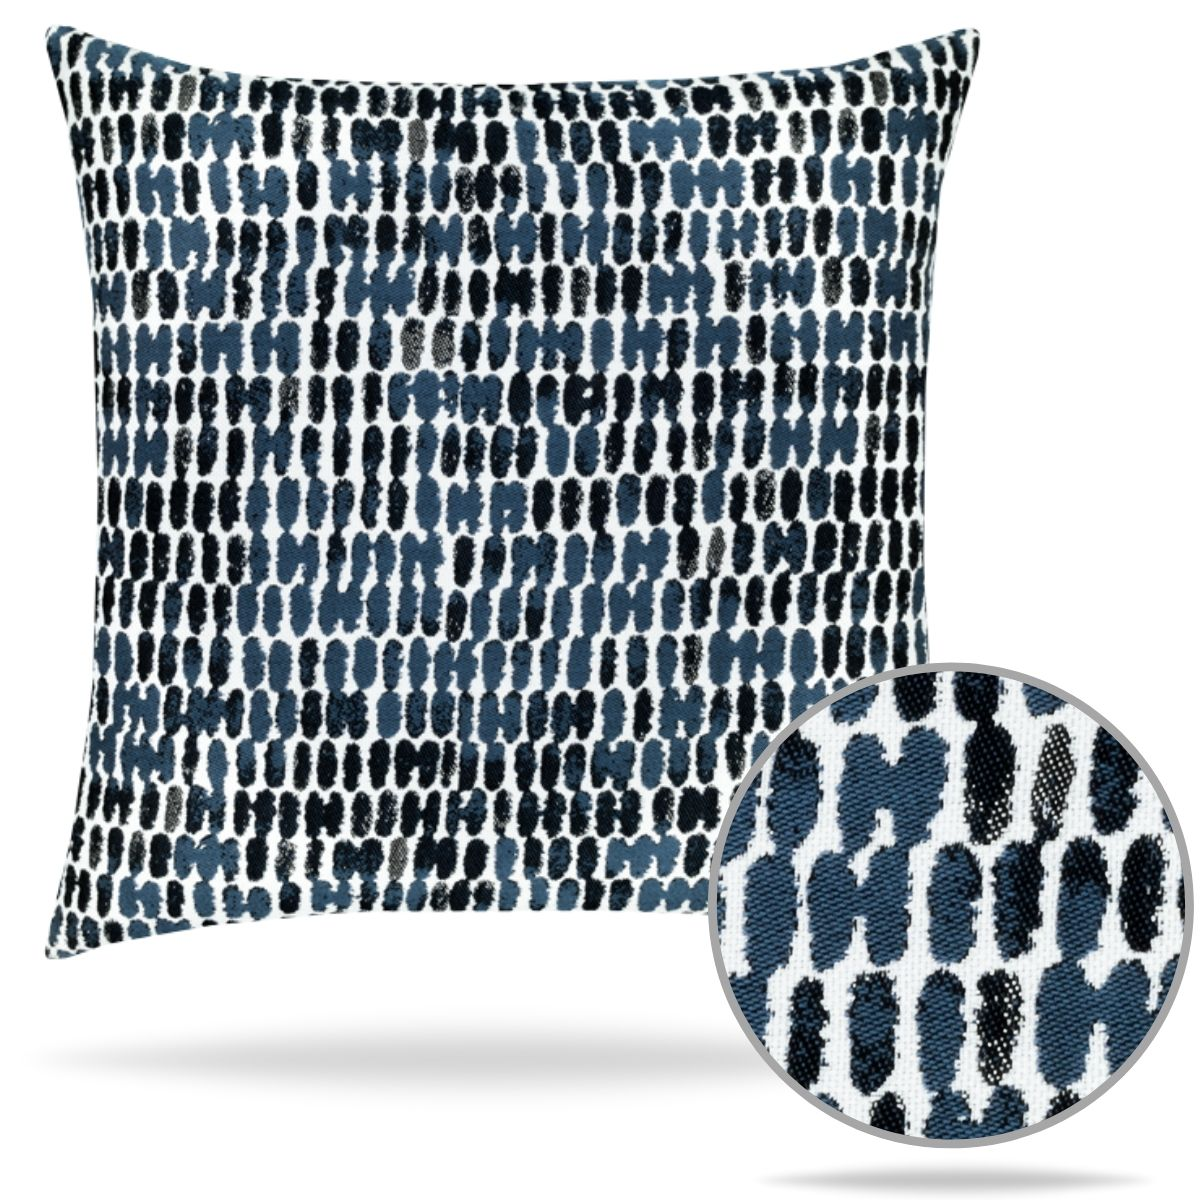 thumbprint-indigo-pillow